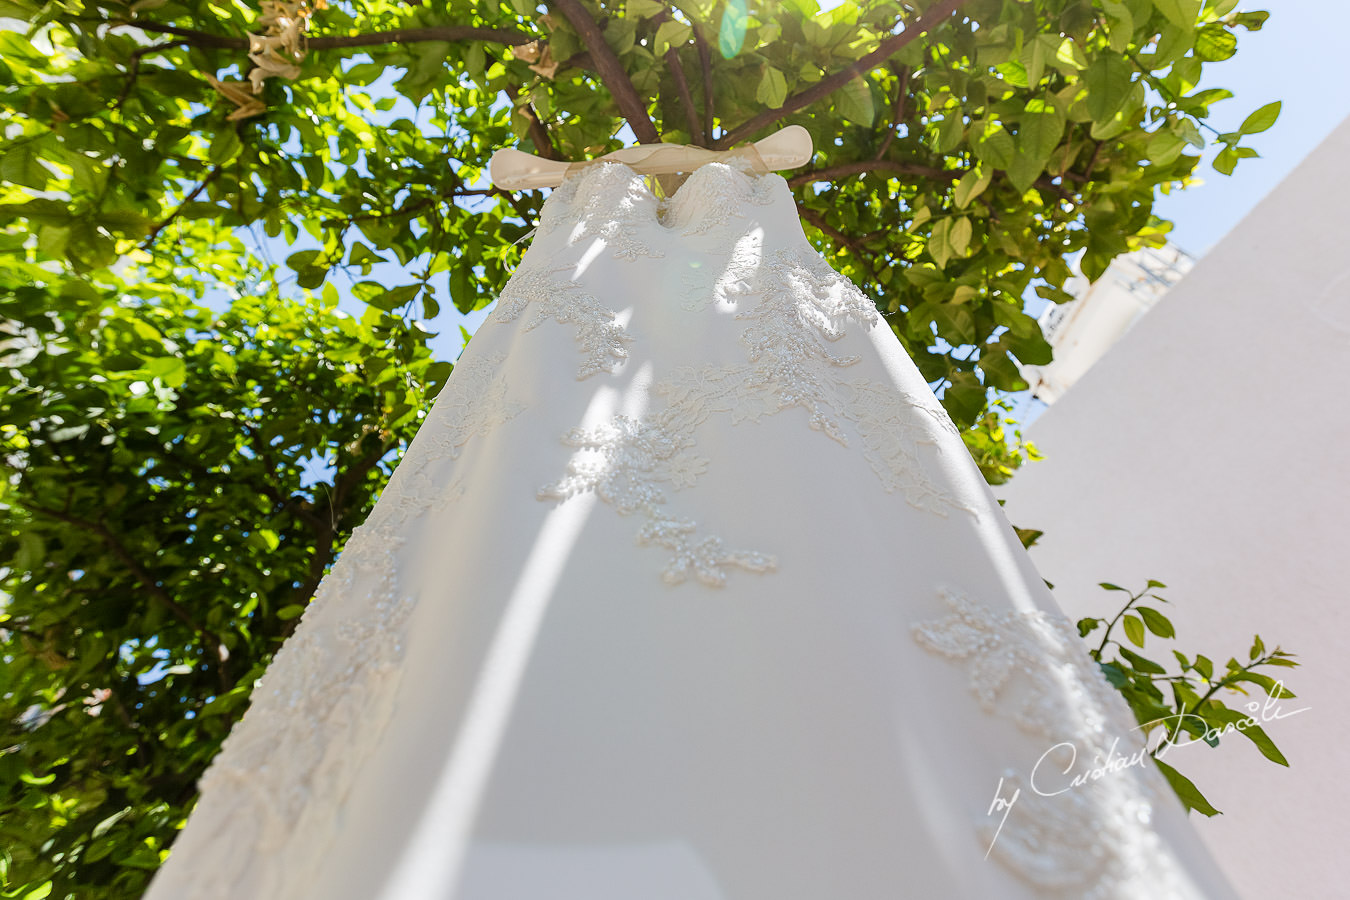 Beautiful Wedding Dress photographed by Cristian Dascalu during a wedding ceremony at St Raphael Hotel in Limassol, Cyprus.